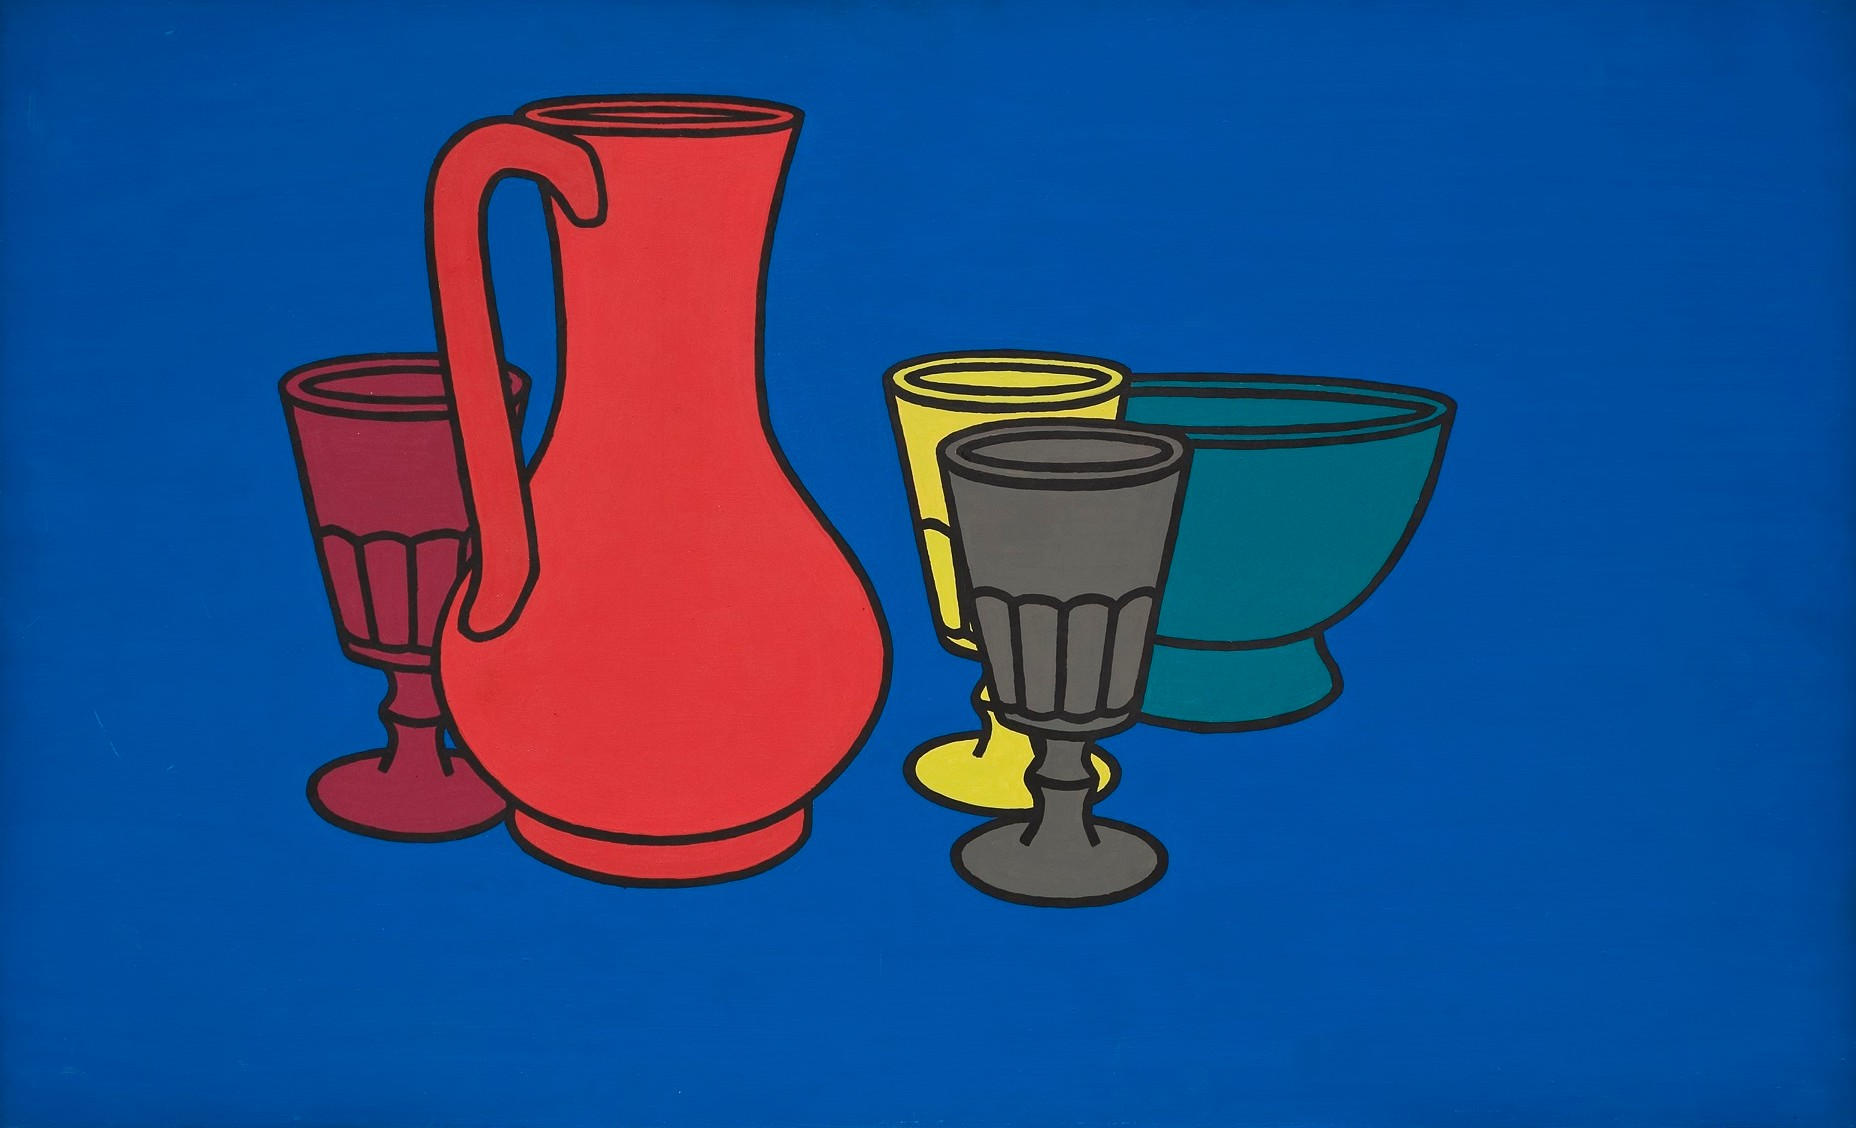 A still life arrangement of a red jug surrounded by a red, grey and yellow goblet and teal coloured bowl against a blue background.